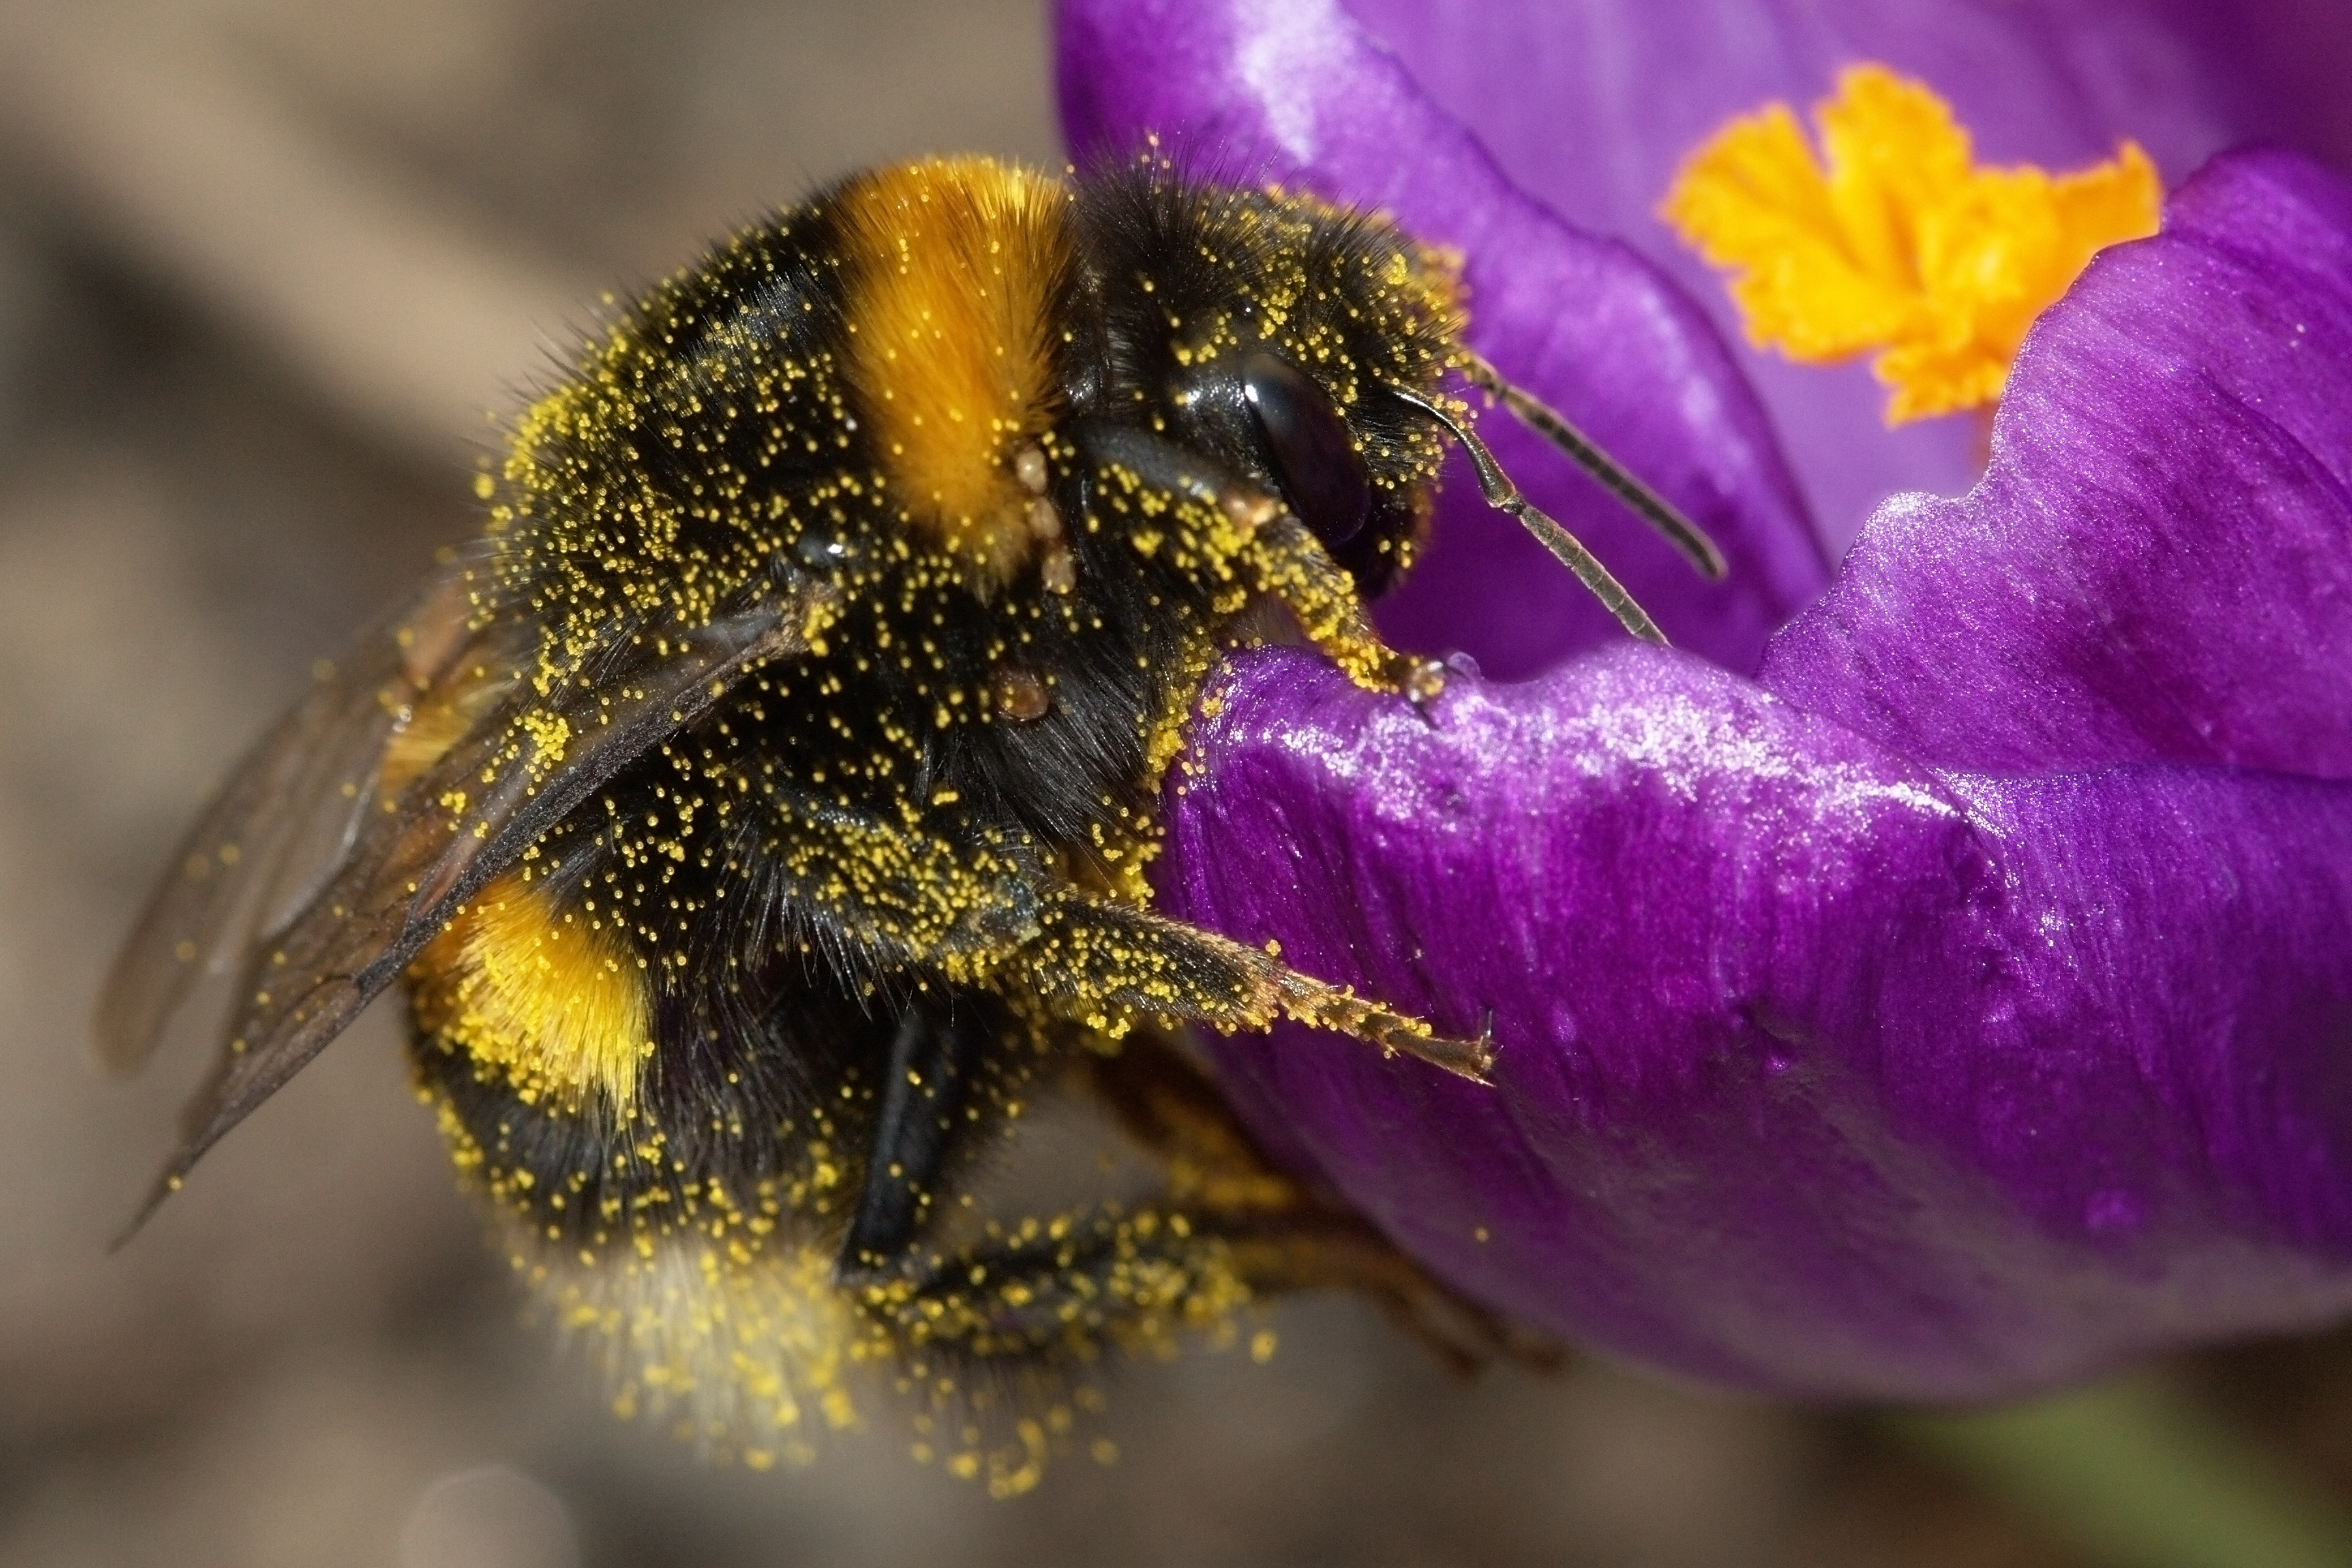 File:Bumblebee-2009-04-19-01.jpg - Wikimedia Commons